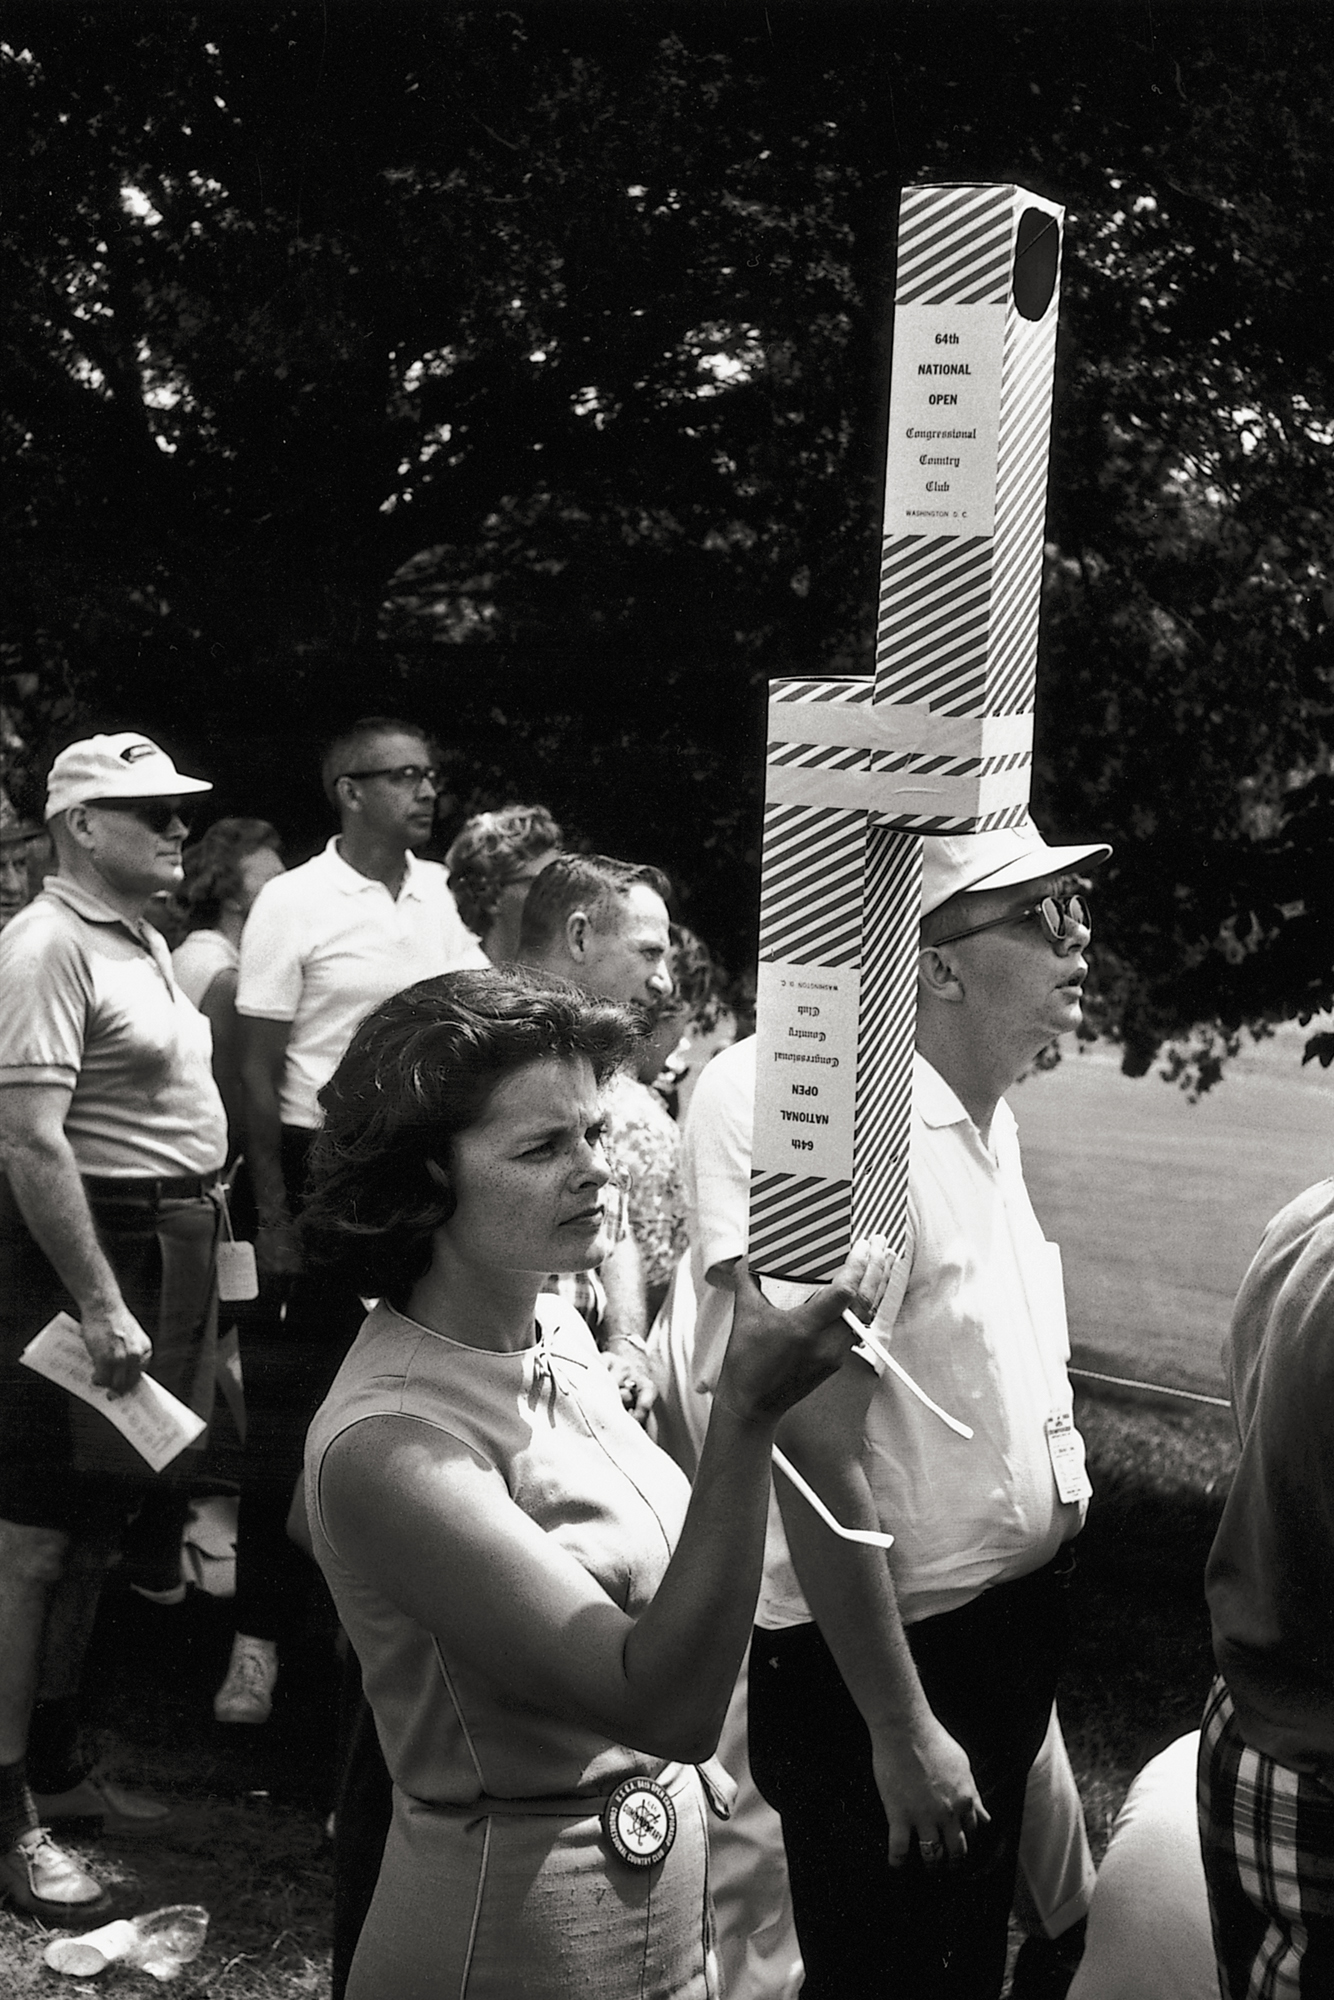 U.S. Open, Congressional Country Club, Bethesda, Maryland, 1964